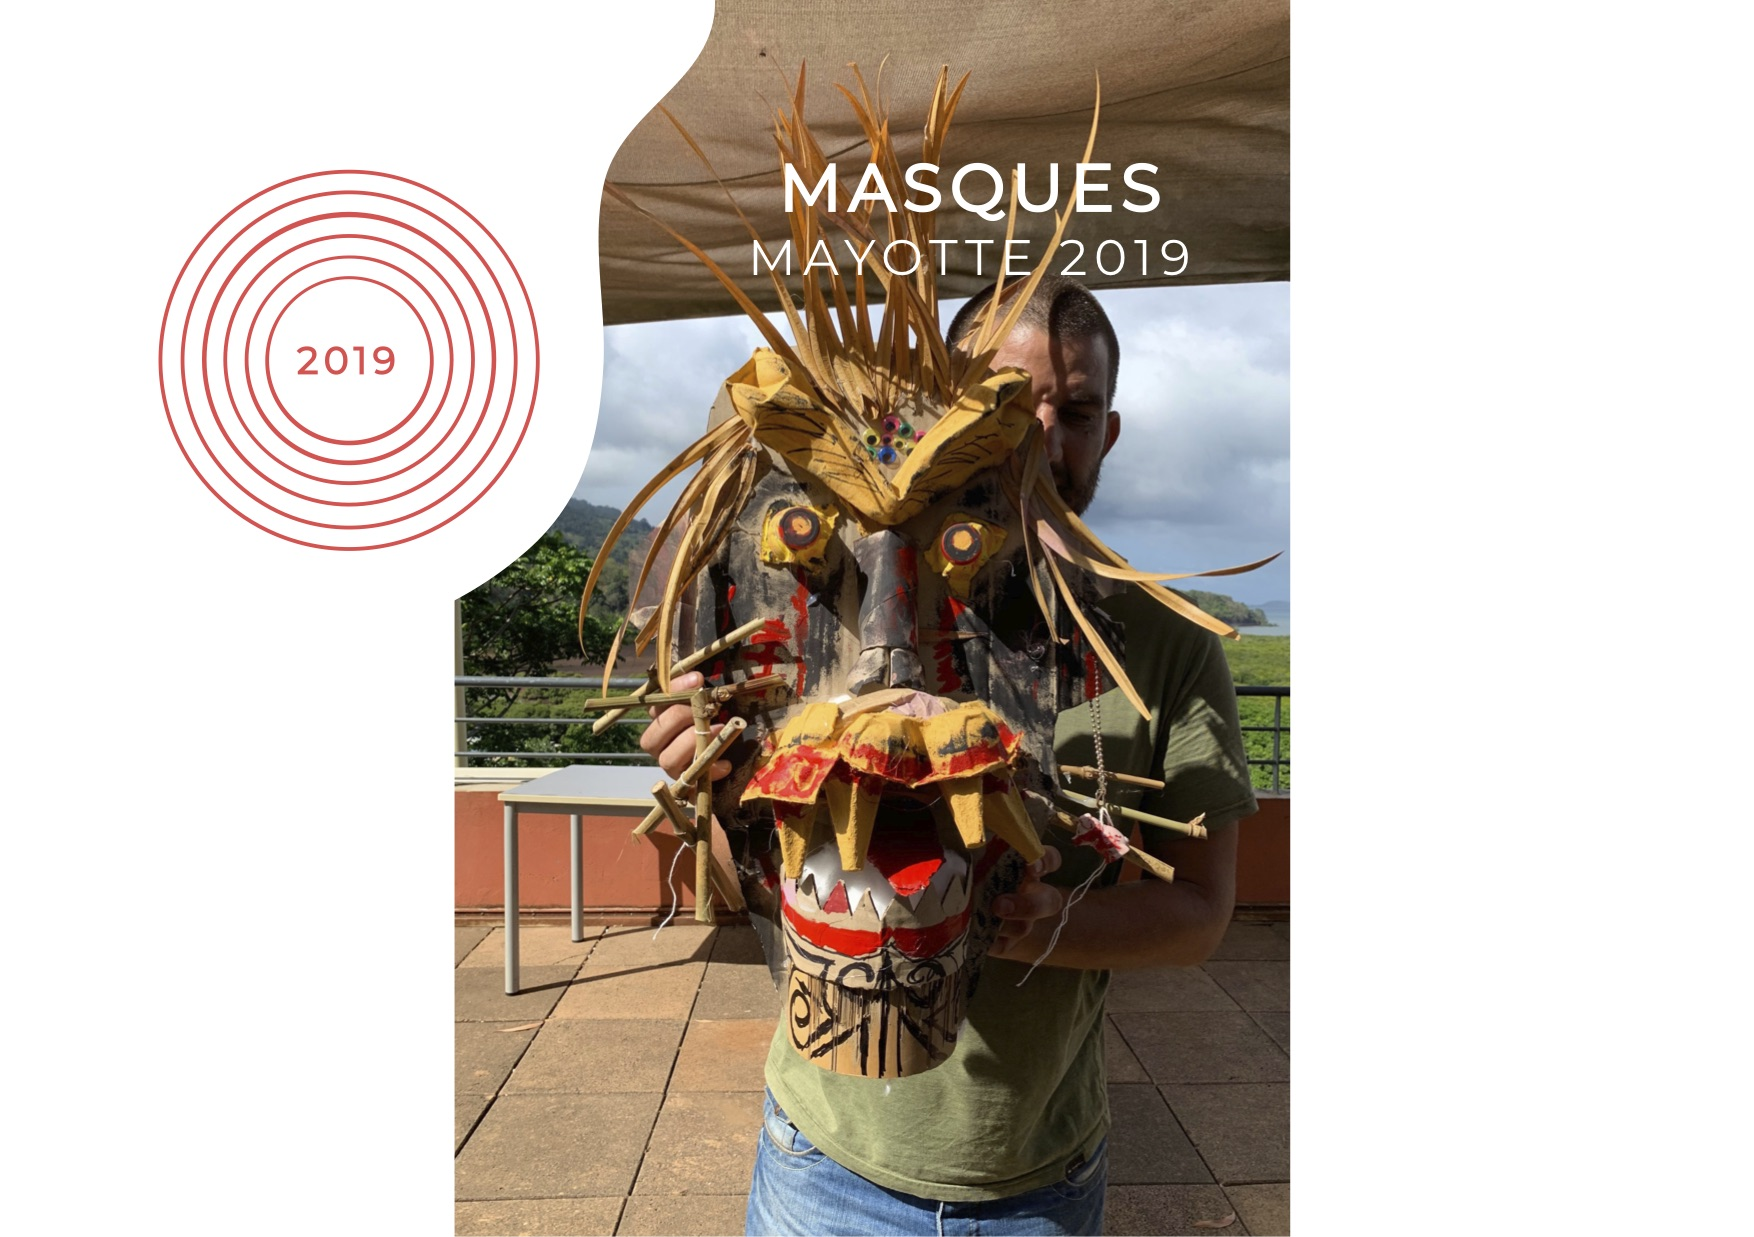 Les masques, TD Mayotte